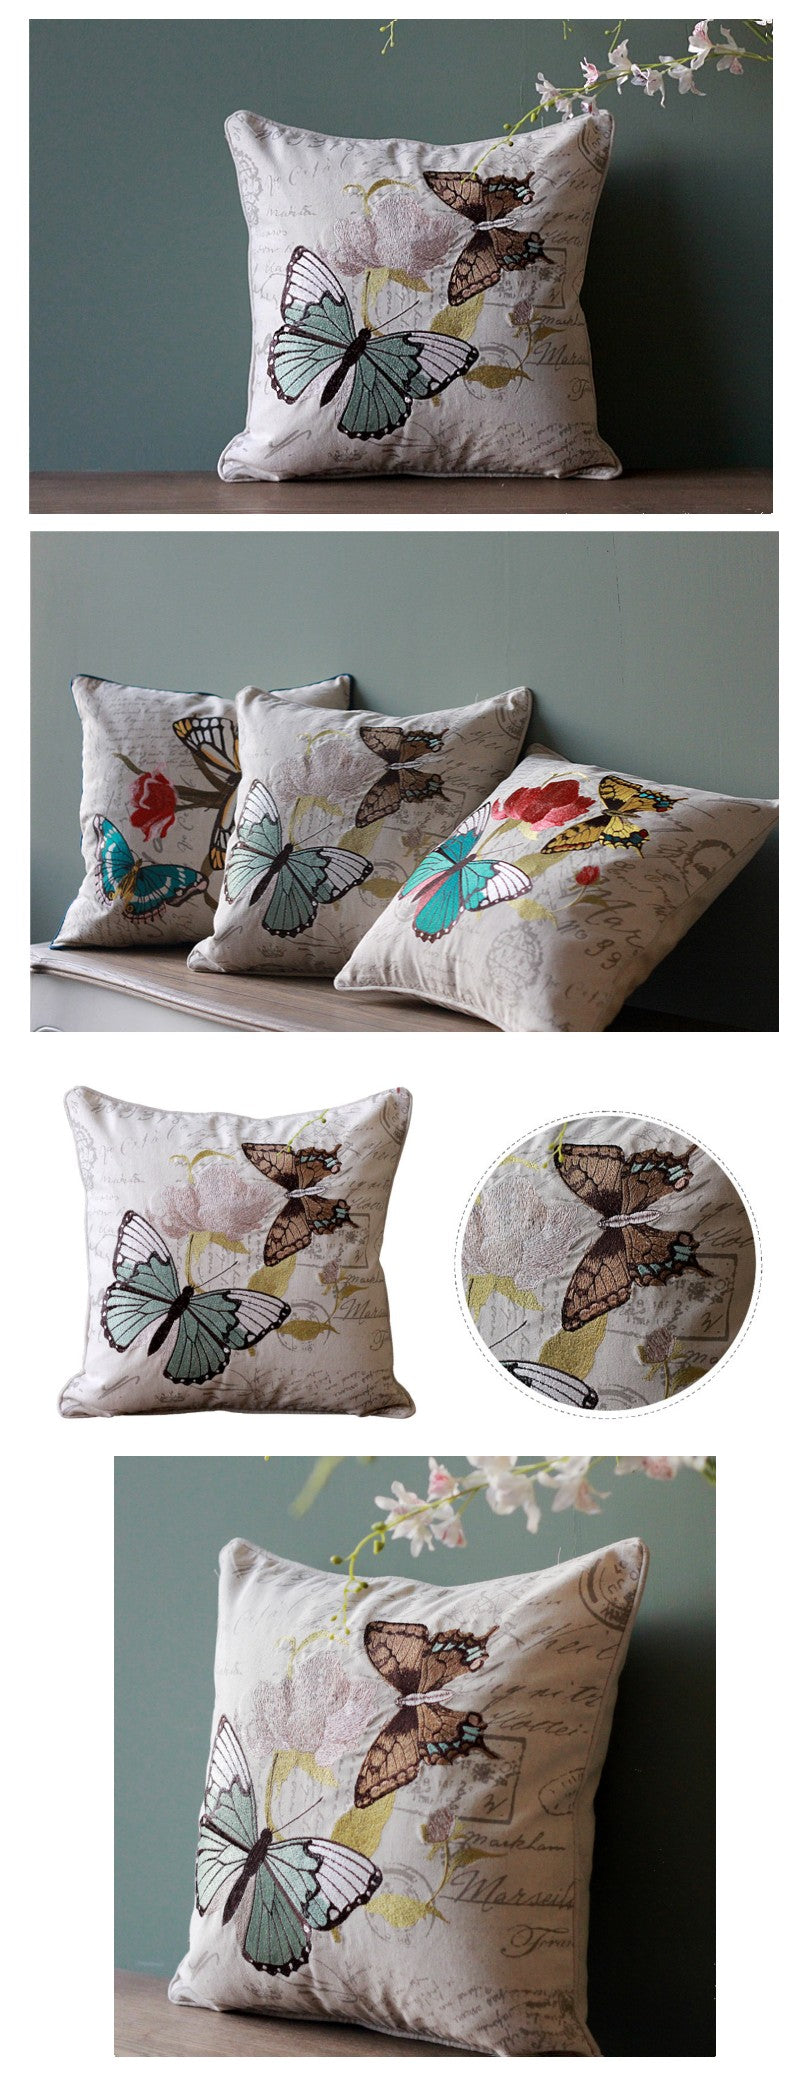 Embroider Butterfly Cotton and linen Pillow Cover, Sofa Pillows, Home Decoration, Decorative Throw Pillow